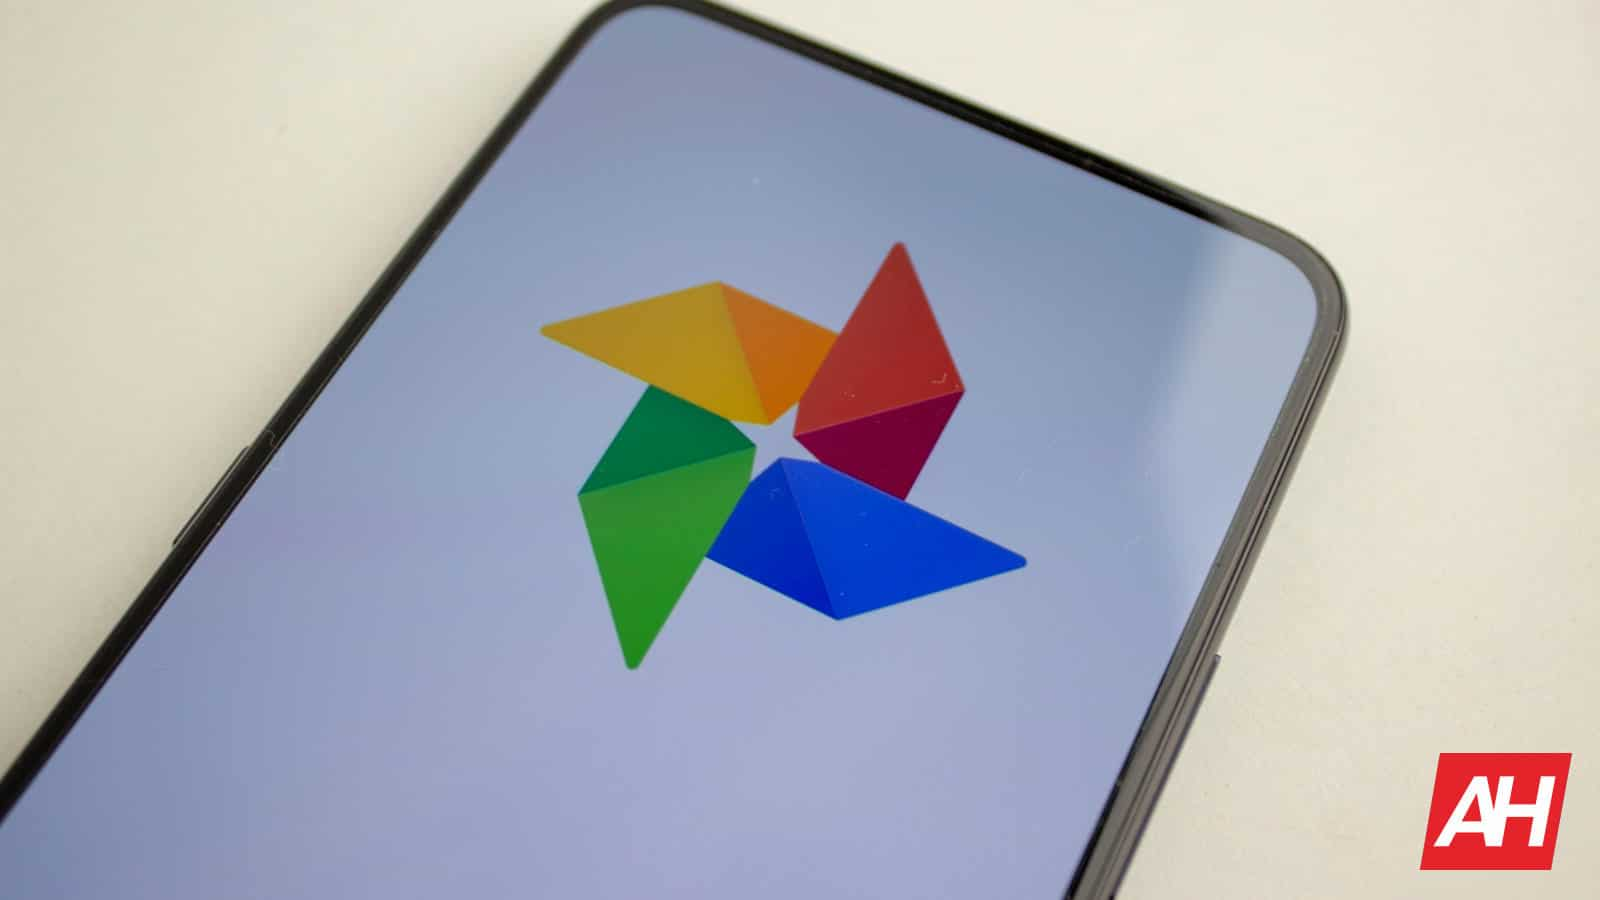 It's Now Even Easier To Find Pictures In Google Photos